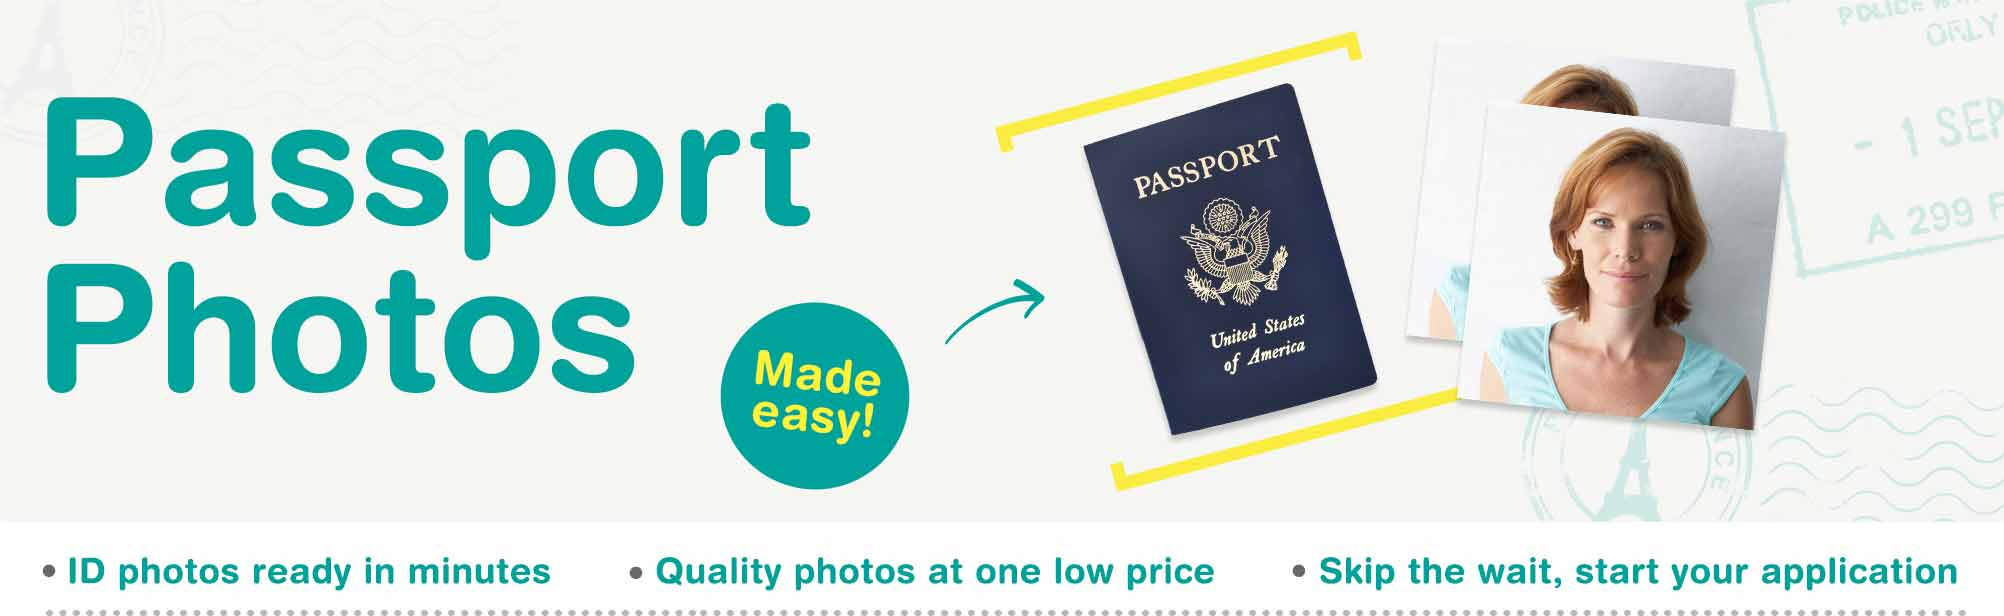 Passport Photos Made Easy. ID Photos ready in minutes. Quality photos at one low price. Skip the wait, start your application